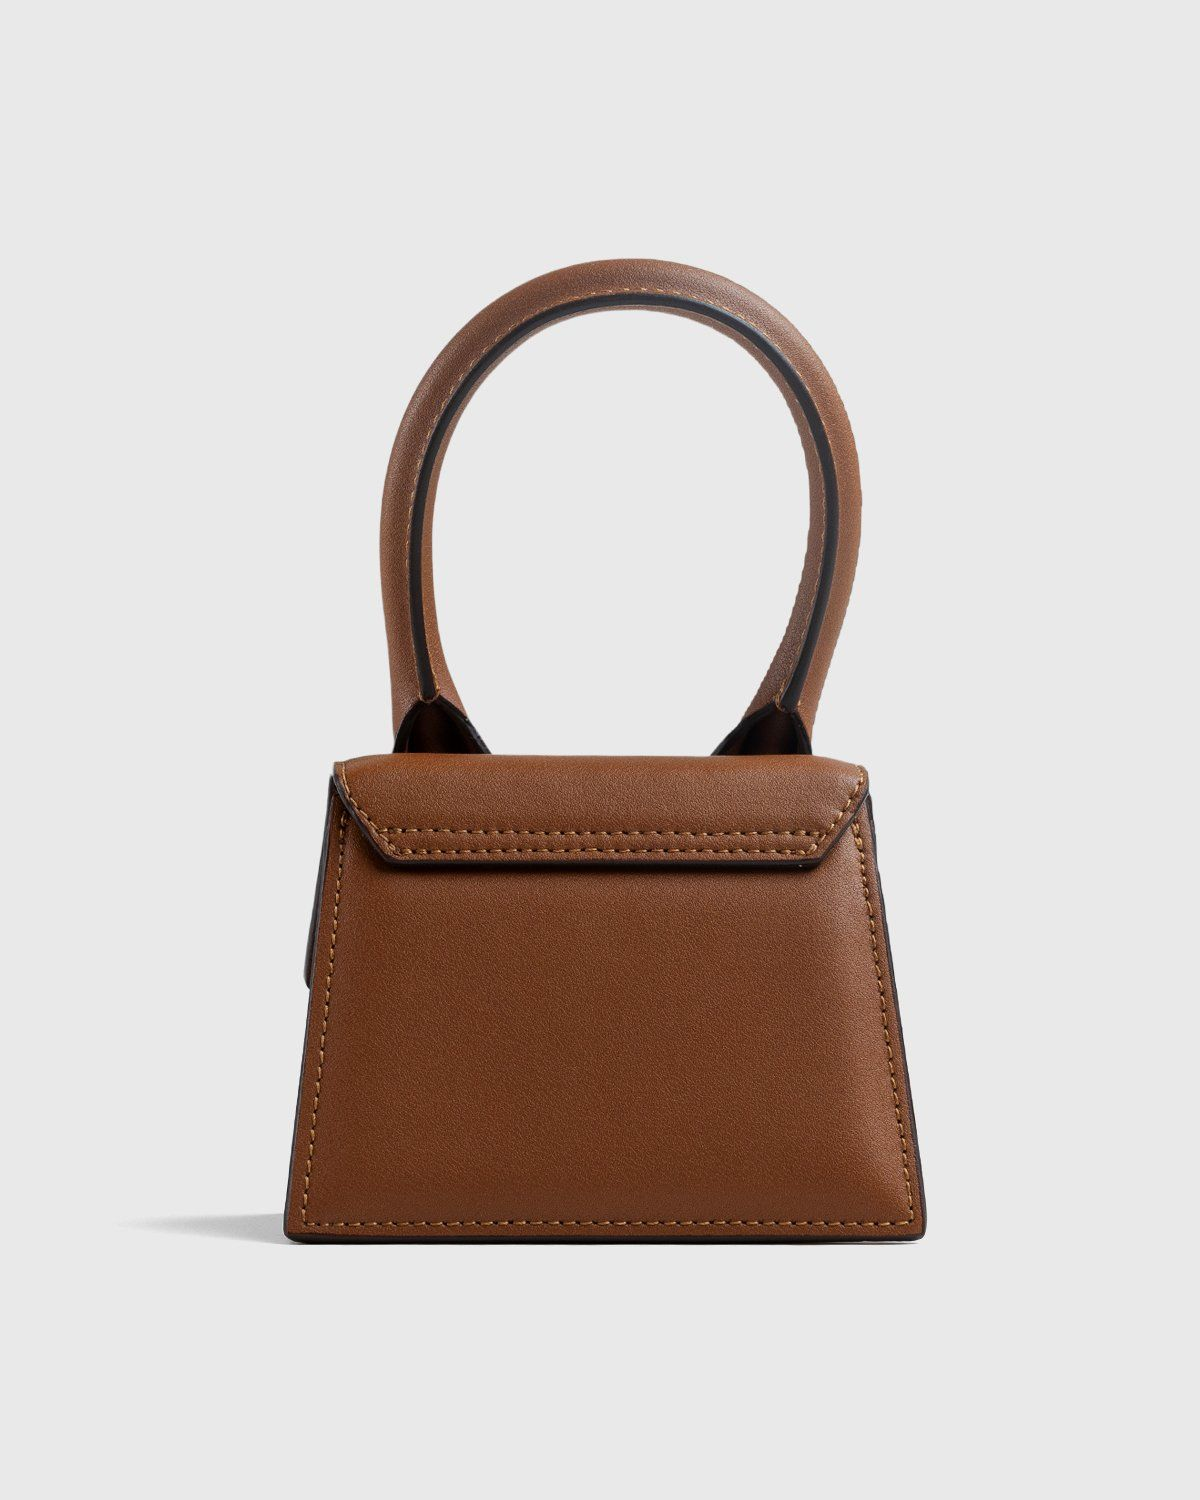 Jacquemus – Le Chiquito Homme Brown - Image 2